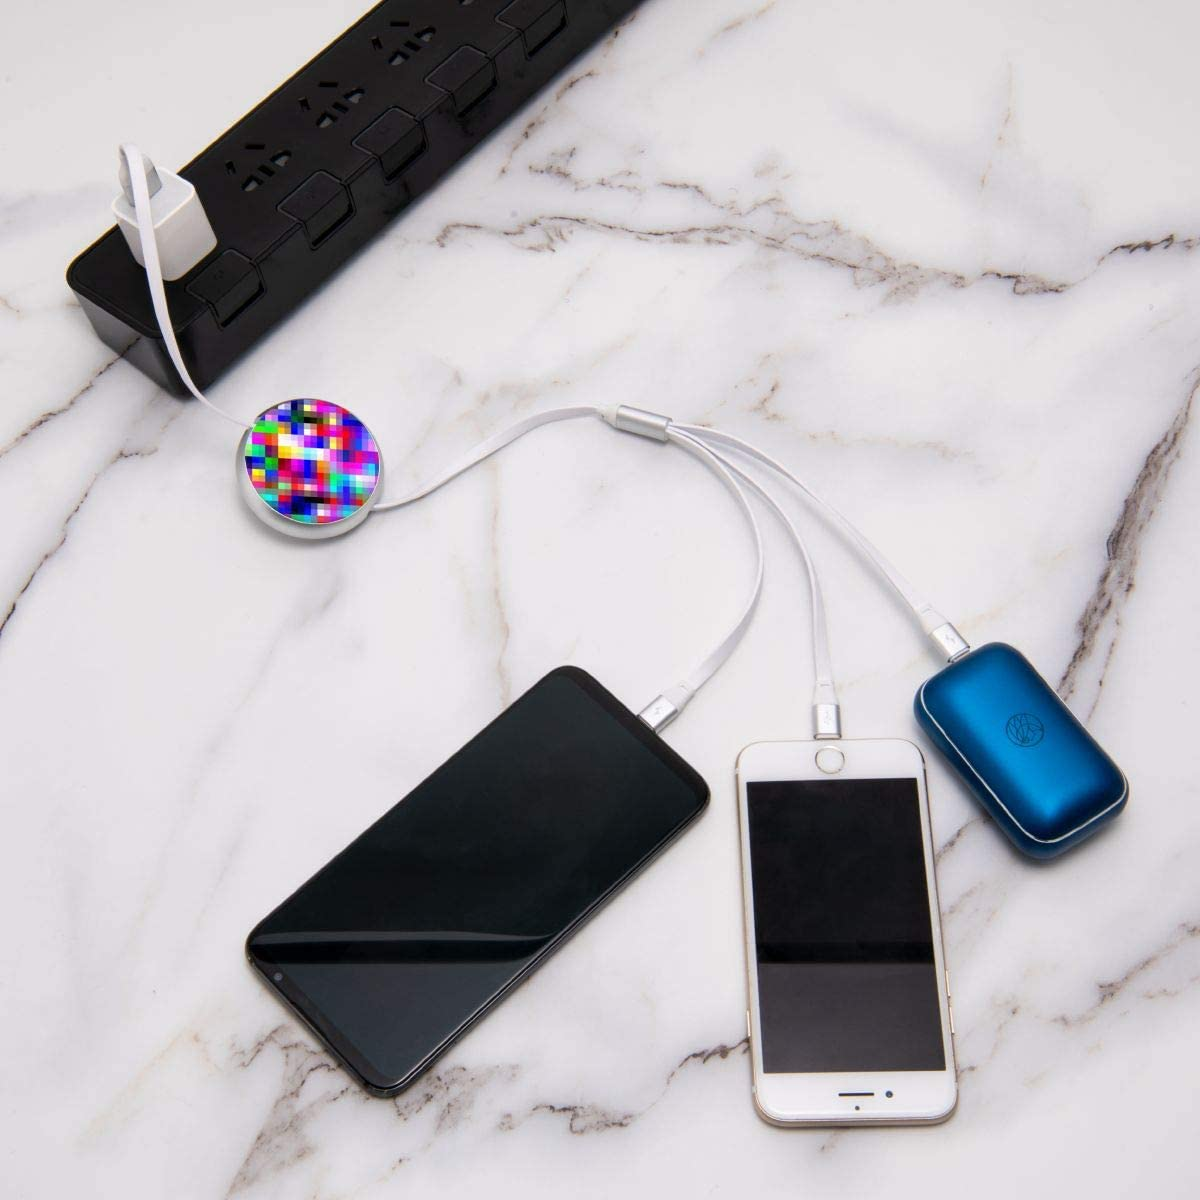 Fantasy Visual Colorfuk Mosaic 3 in 1 Retractable Multiple Charging Cable 3.0a Fast Charger Cord with Phone//Type C//Micro USB Charge Port Adapter Compatible with Cell Phones Tablets and More